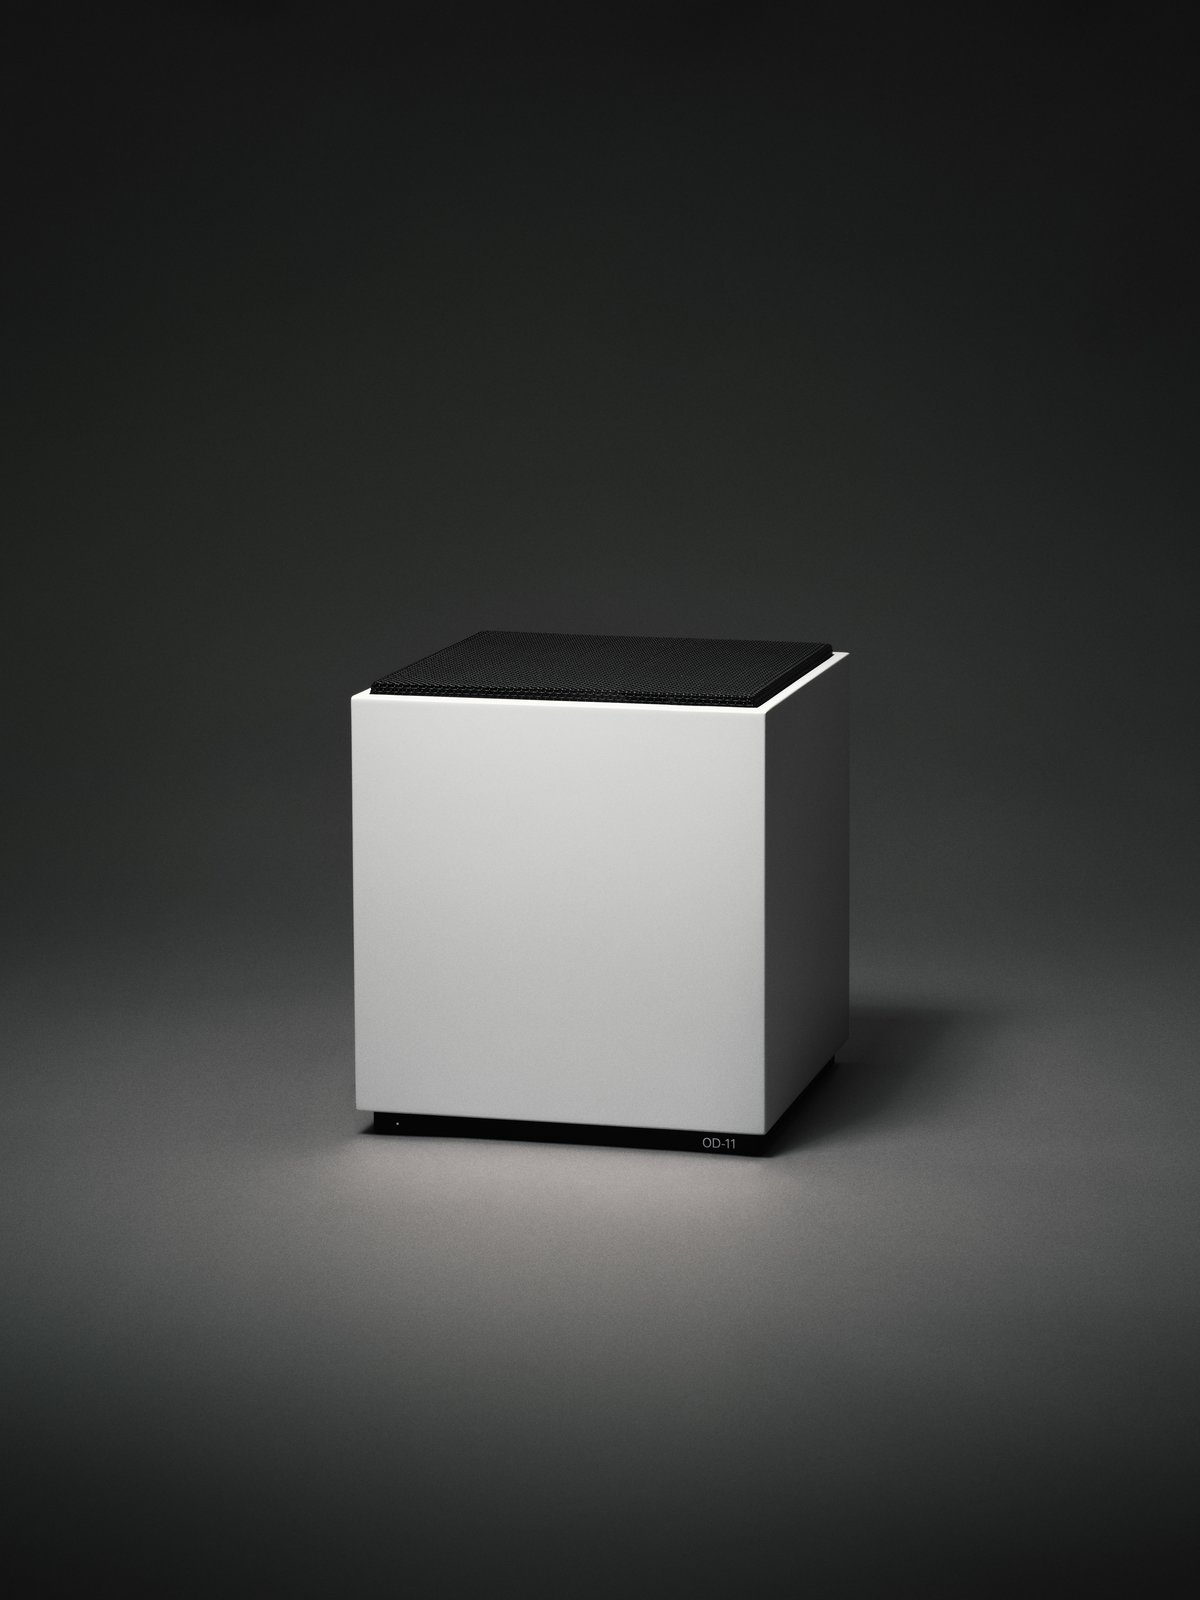 On its own, the OD-11 is both simple and visually arresting. A white cube, the speaker almost feels sculptural. The sleek styling helps to make the function of the product nearly withdraw from focus. Of course, exquisite engineering rests beneath the grille.  Photo 2 of 4 in A Classic 1970s Speaker Gets New Life for a Modern Audience